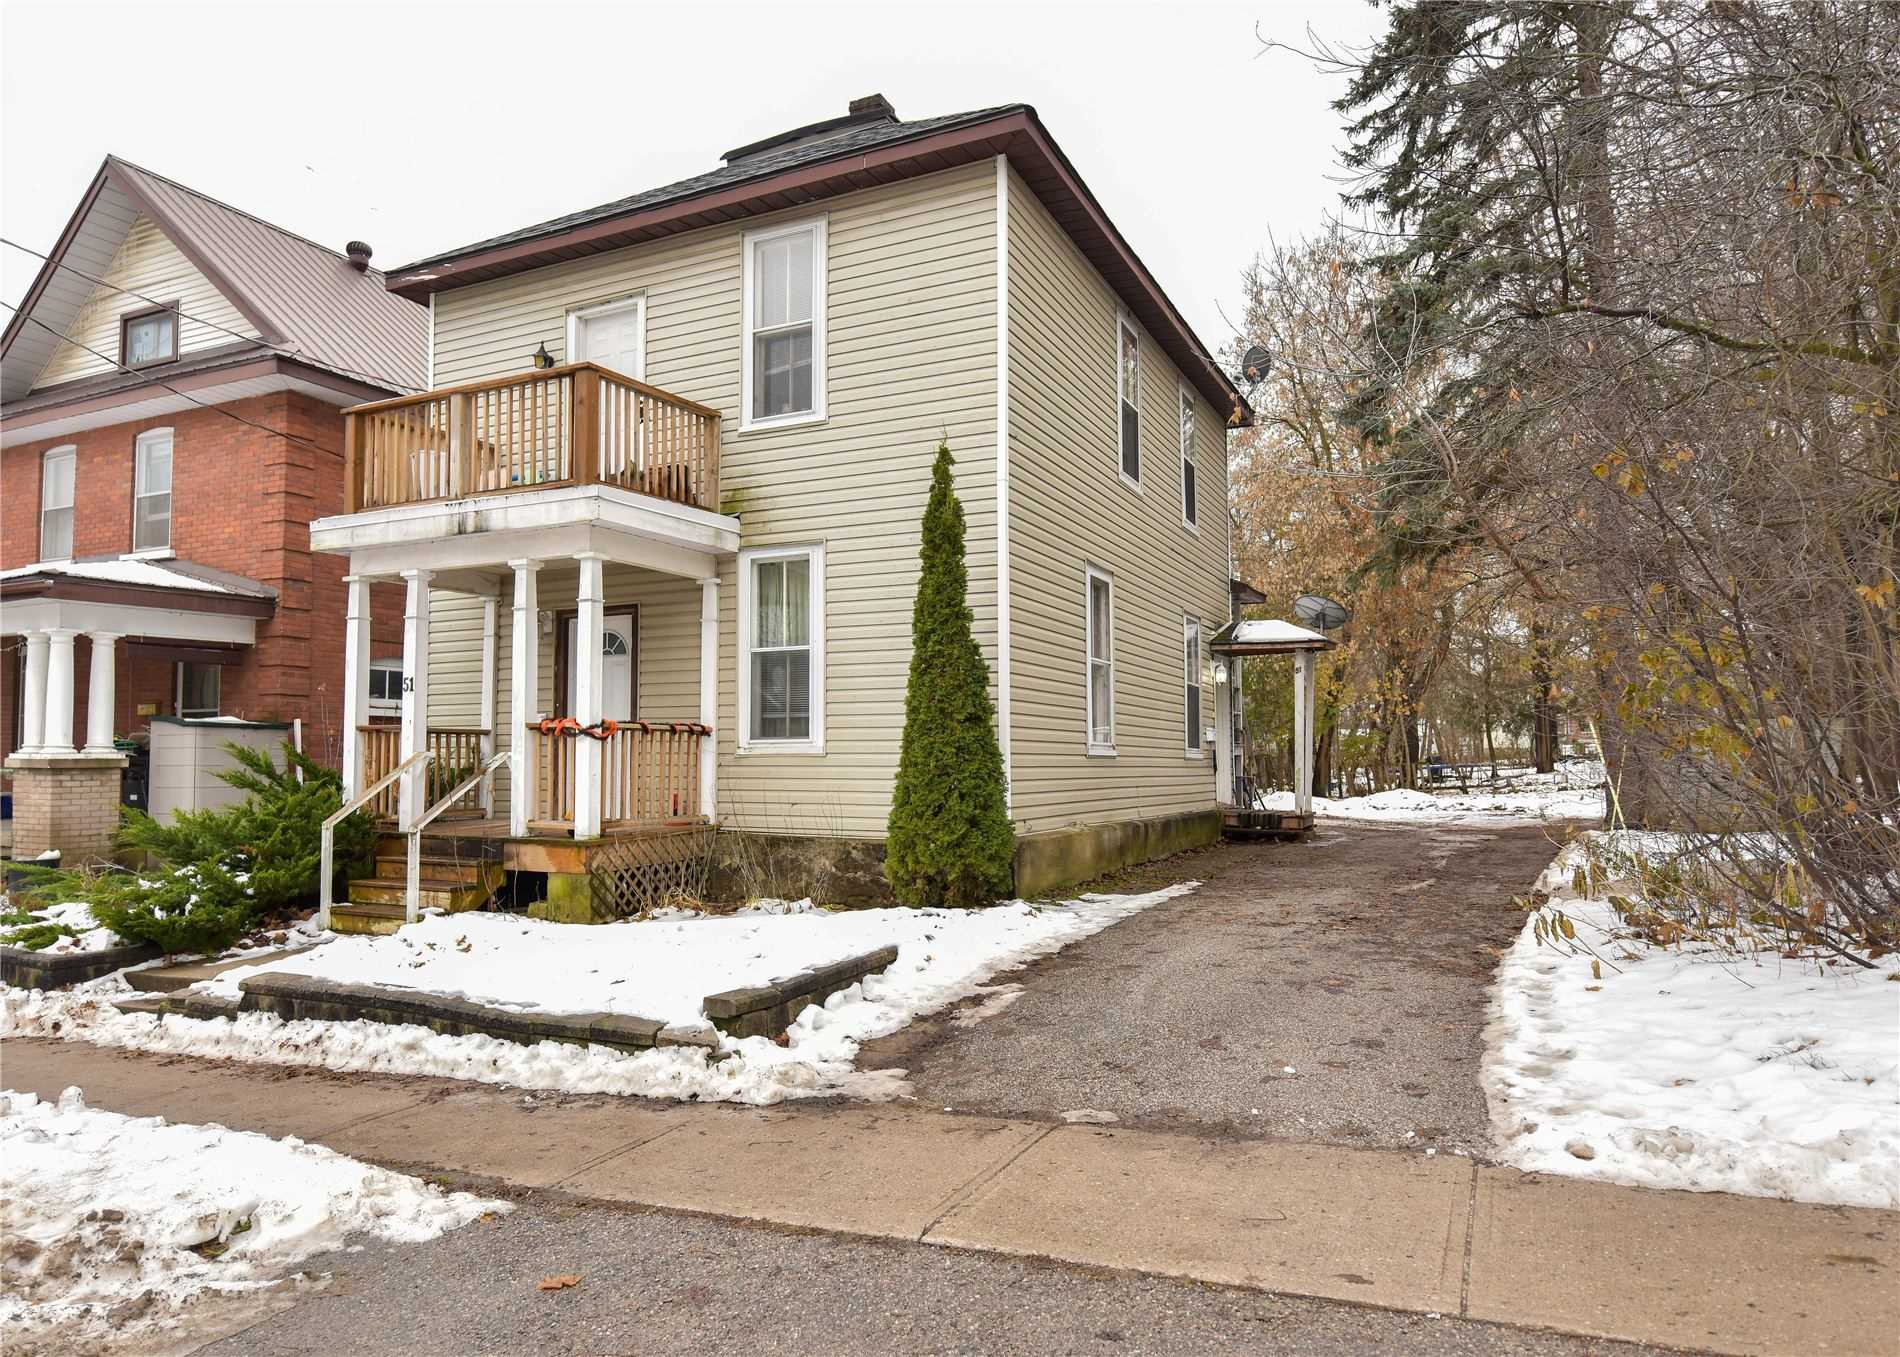 pictures of house for sale MLS: S4643675 located at 51 William St, Orillia L3V5N4